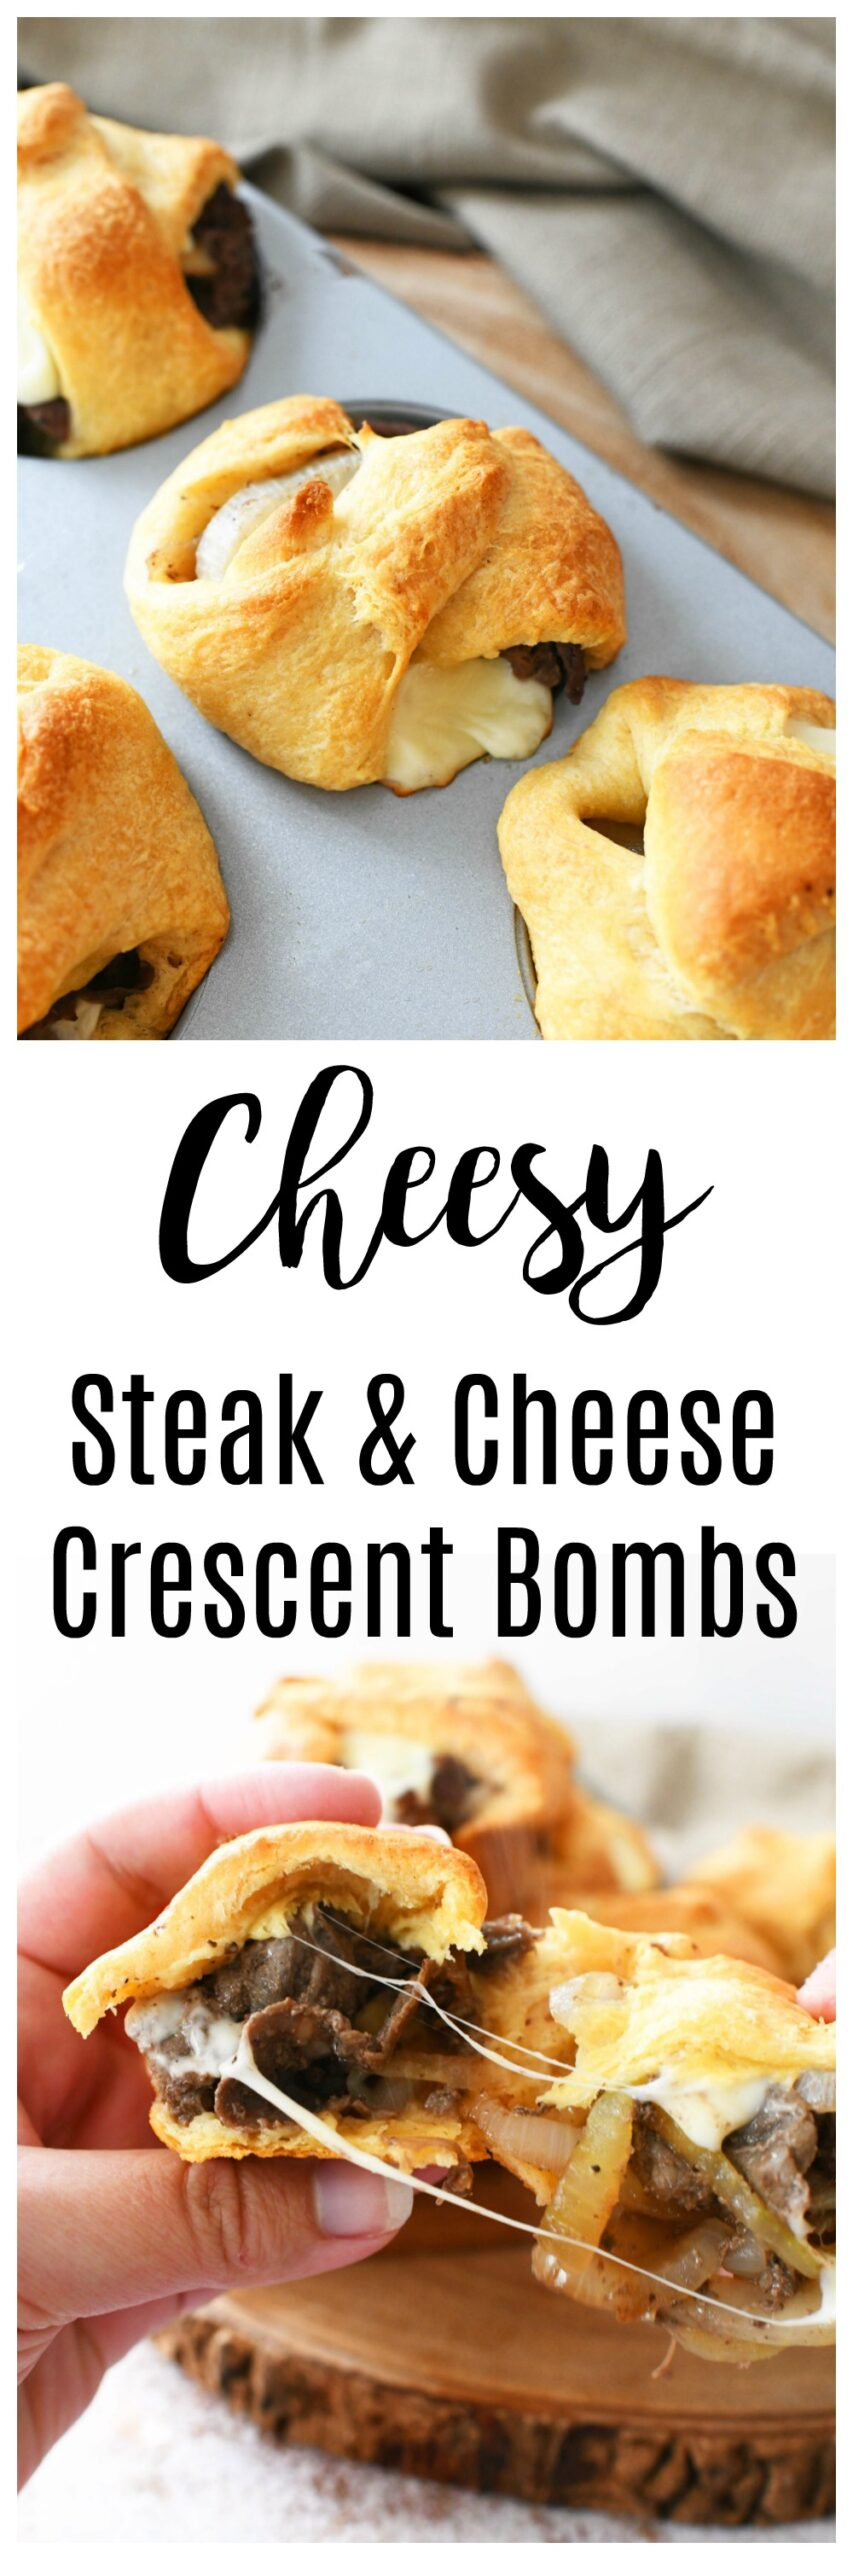 Steak & Cheese Bombs